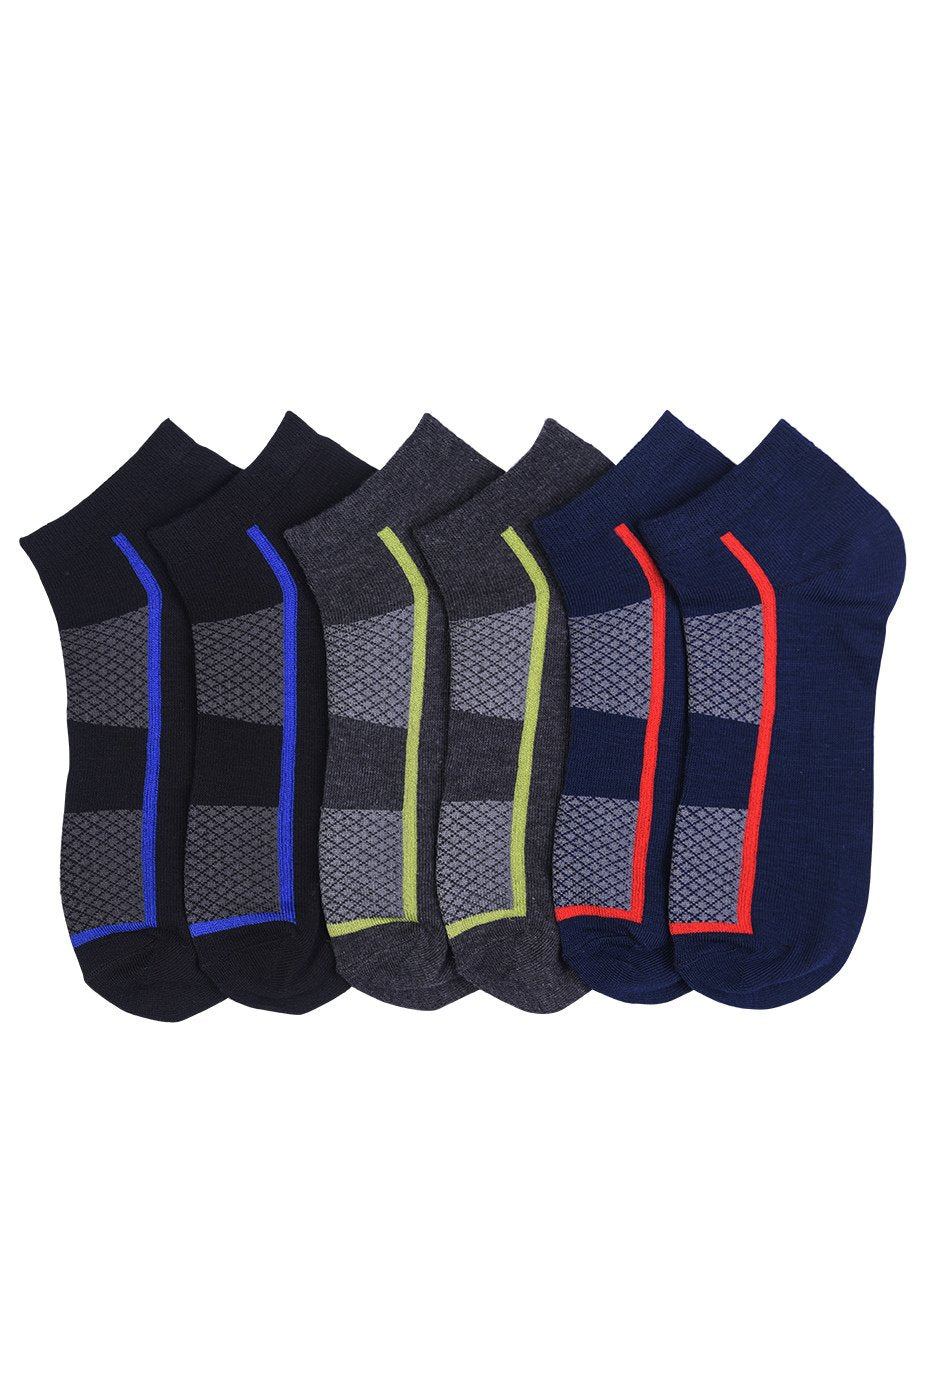 Power Club Spandex Socks